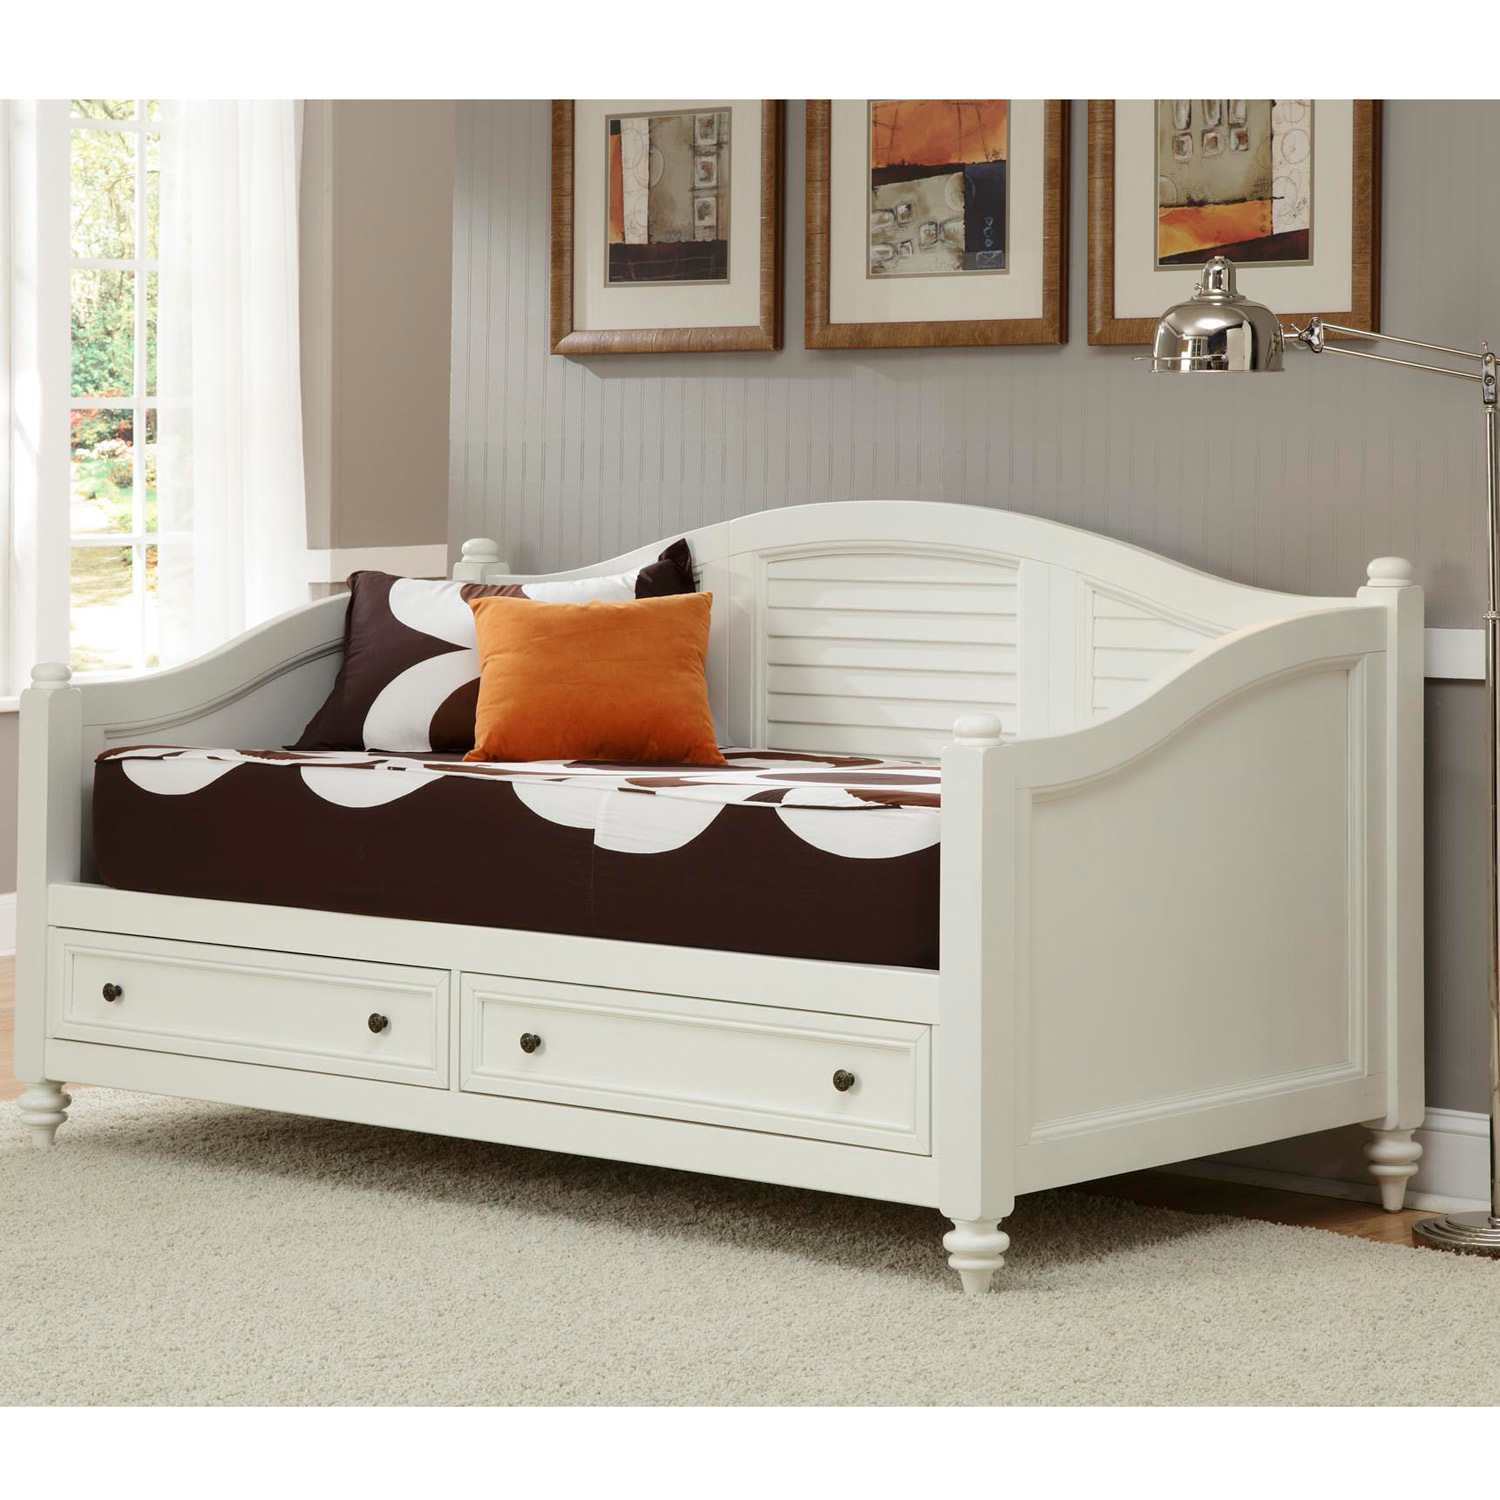 Full Size Daybed with Trundle Bed | Full Size Daybed with Trundle | Twin Daybed with Storage